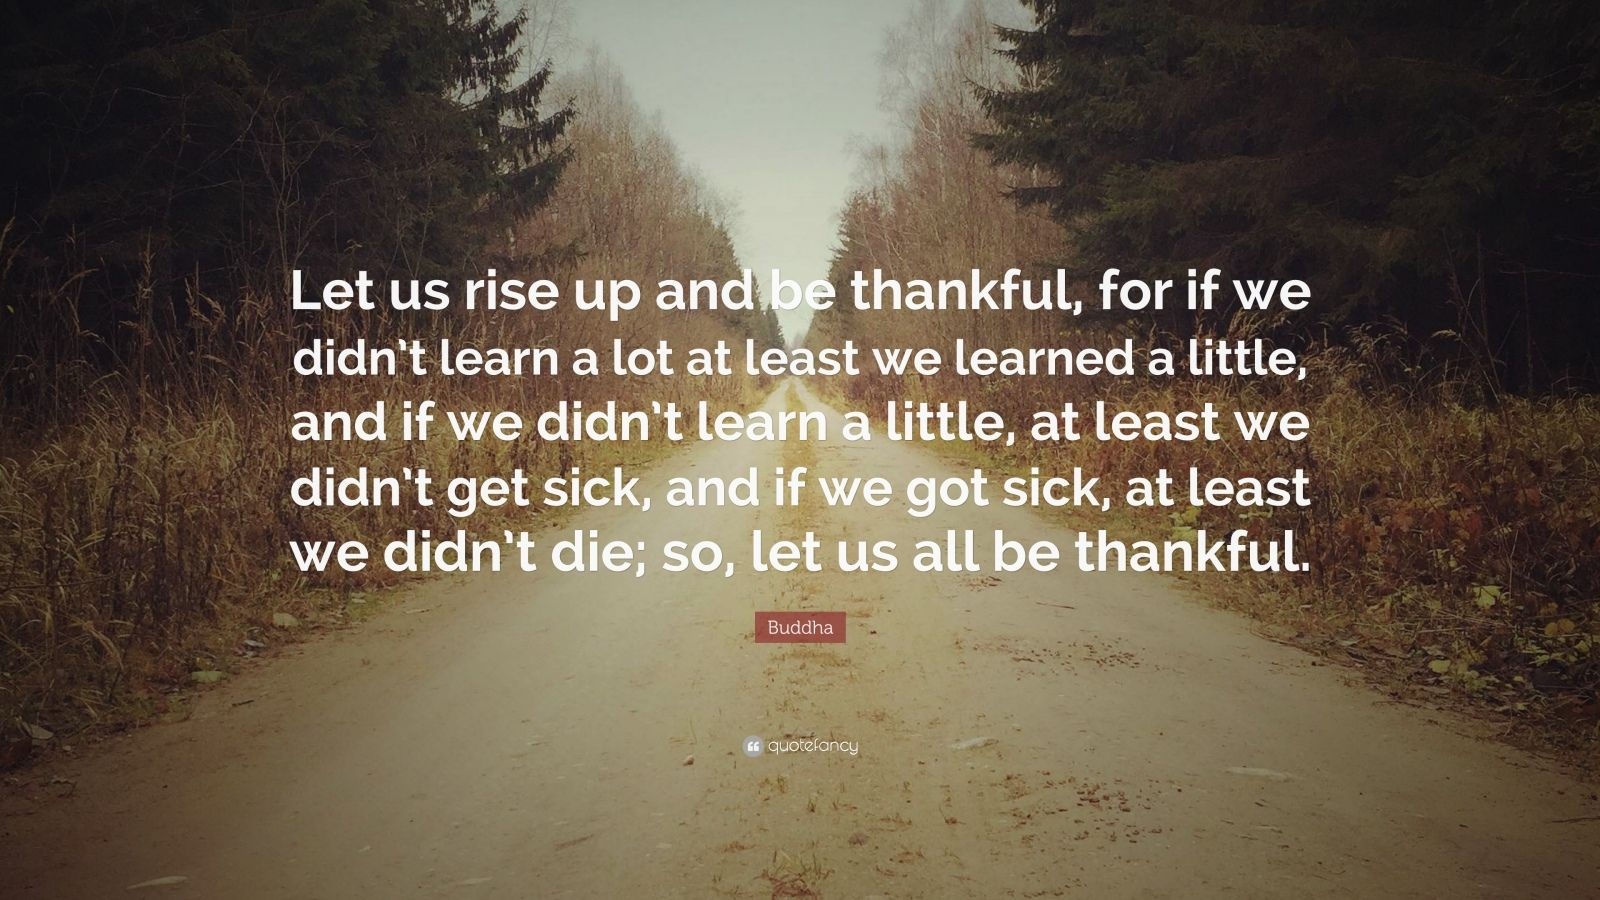 """Buddha Quote: """"Let us rise up and be thankful, for if we didn't learn a lot at least we learned a little, and if we didn't learn a little, at least we didn't get sick, and if we got sick, at least we didn't die; so, let us all be thankful."""""""